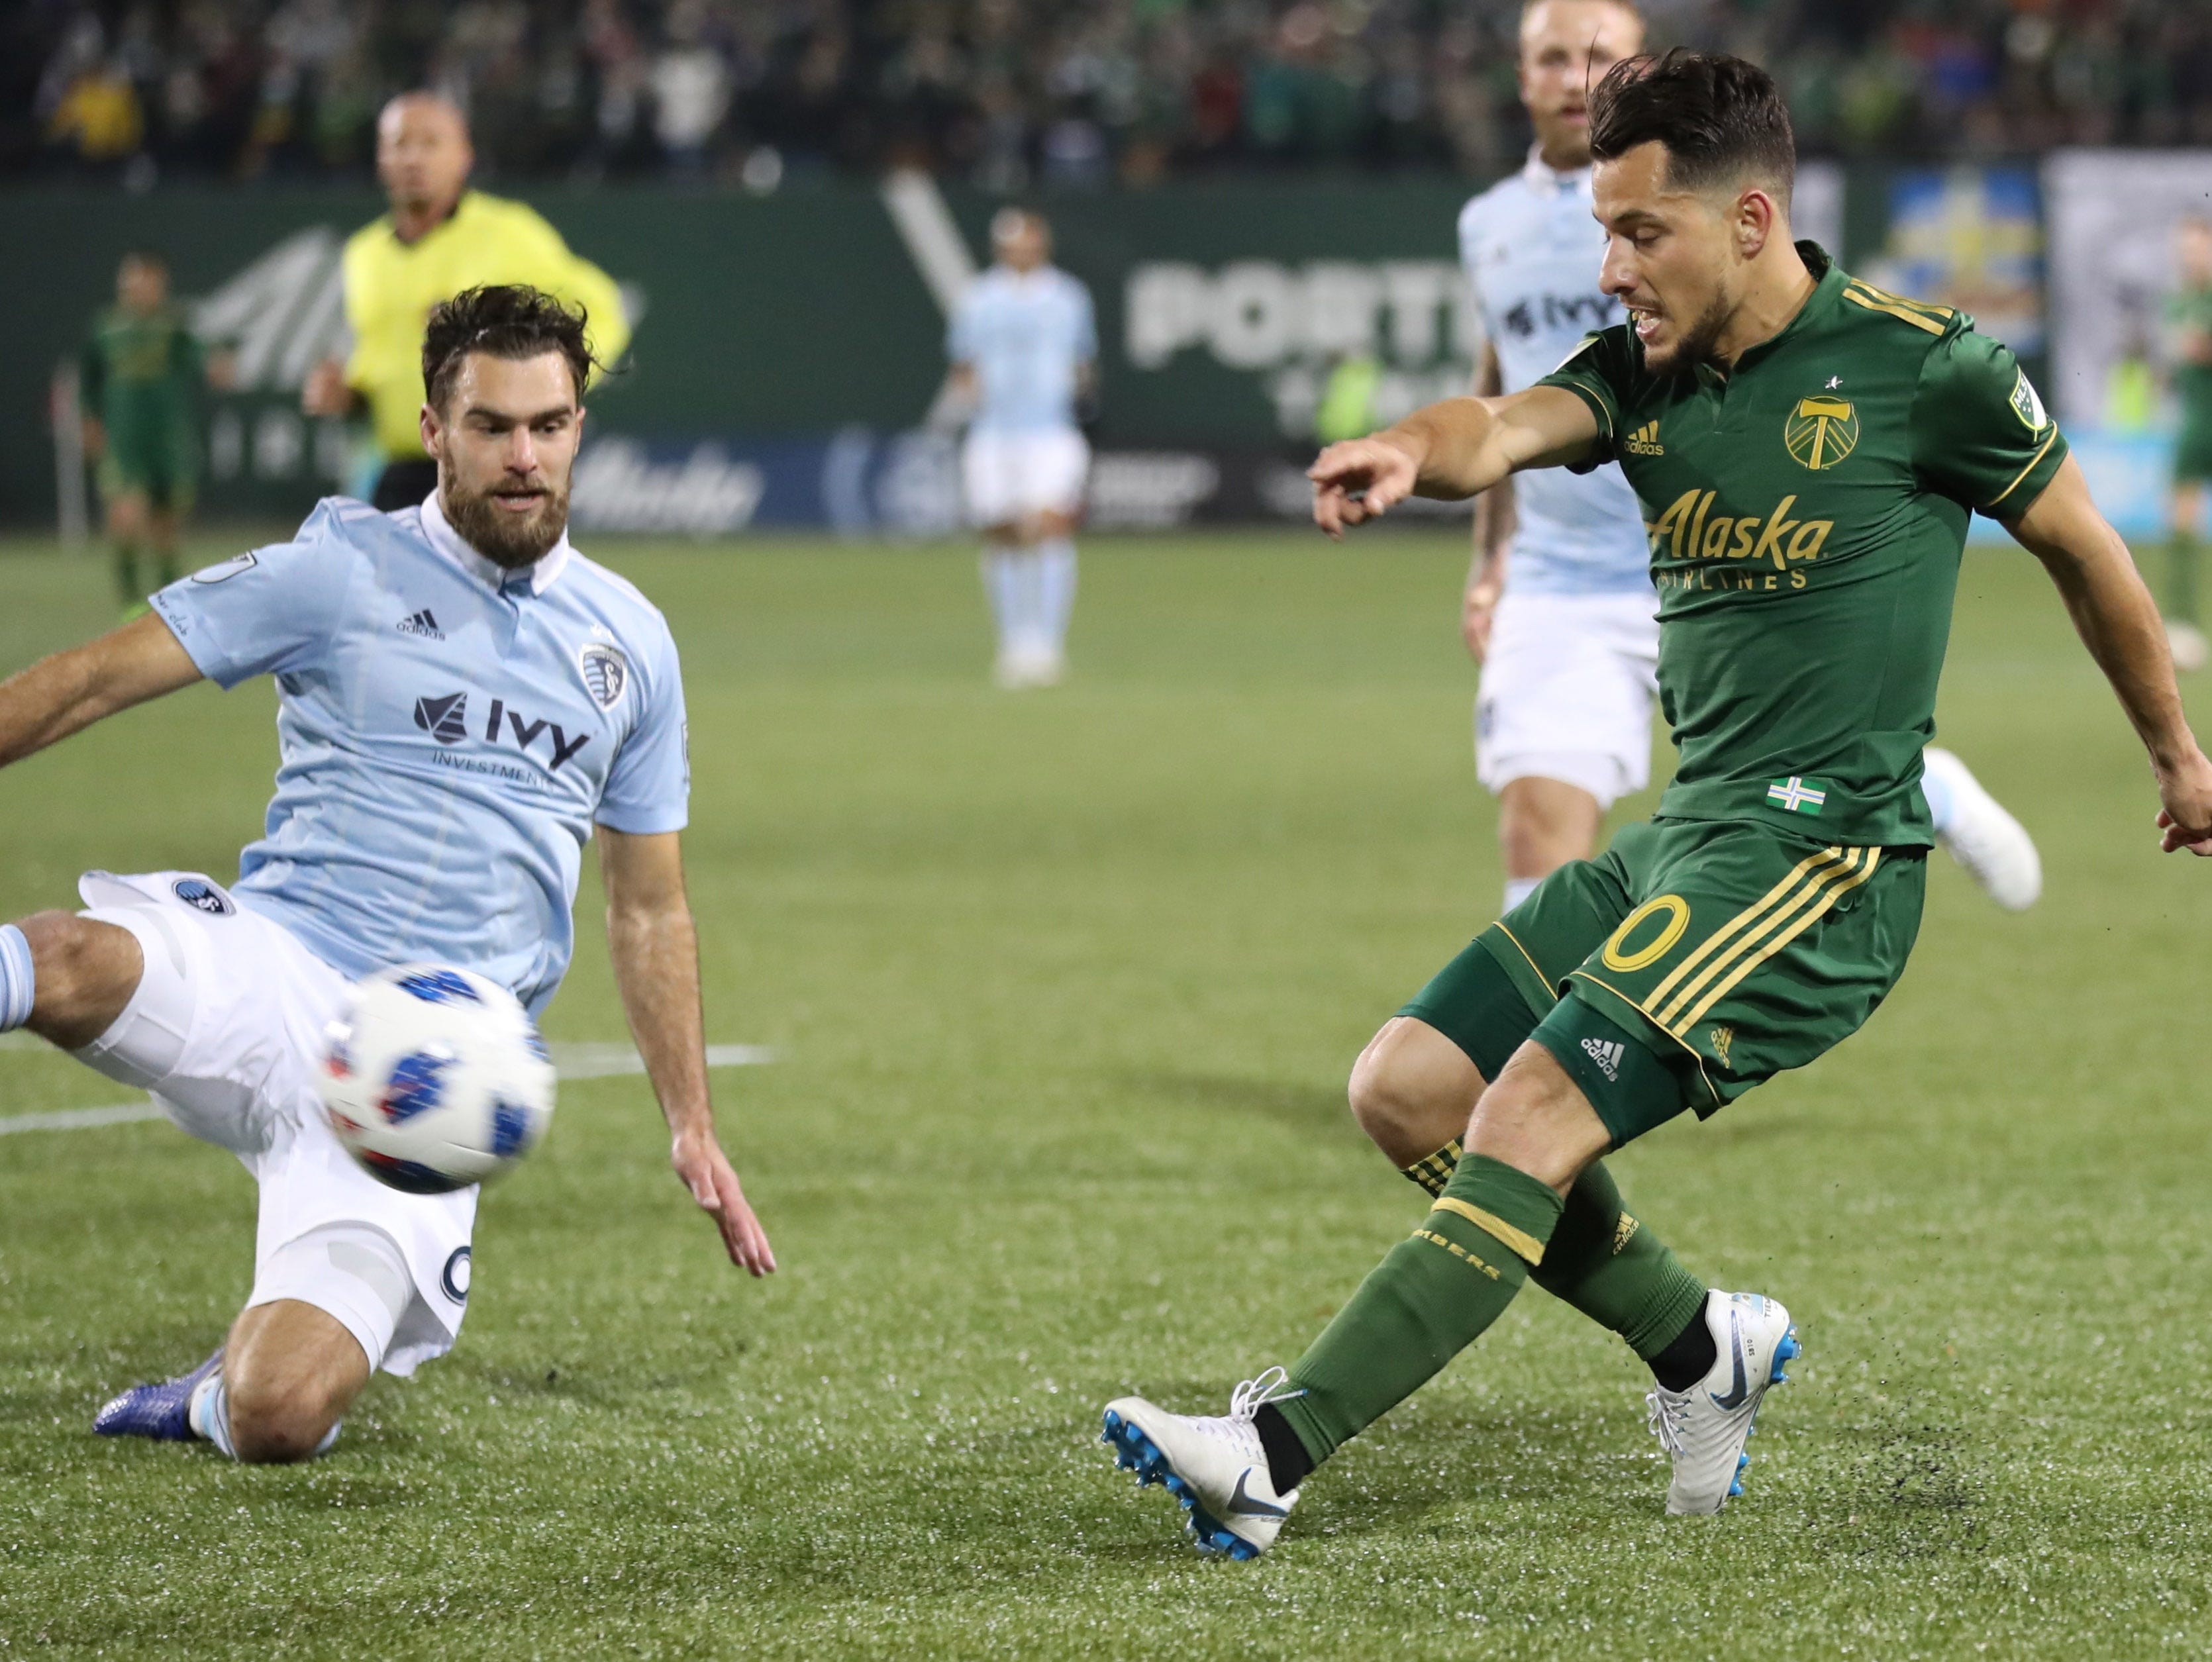 Nov 25, 2018; Portland, OR, USA; Portland Timbers midfielder Sebastian Blanco (10) kicks the ball against Sporting Kansas City midfielder Graham Zusi (8) in the second of the first leg of the MLS Western Conference Championship at Providence Park. Mandatory Credit: Jaime Valdez-USA TODAY Sports